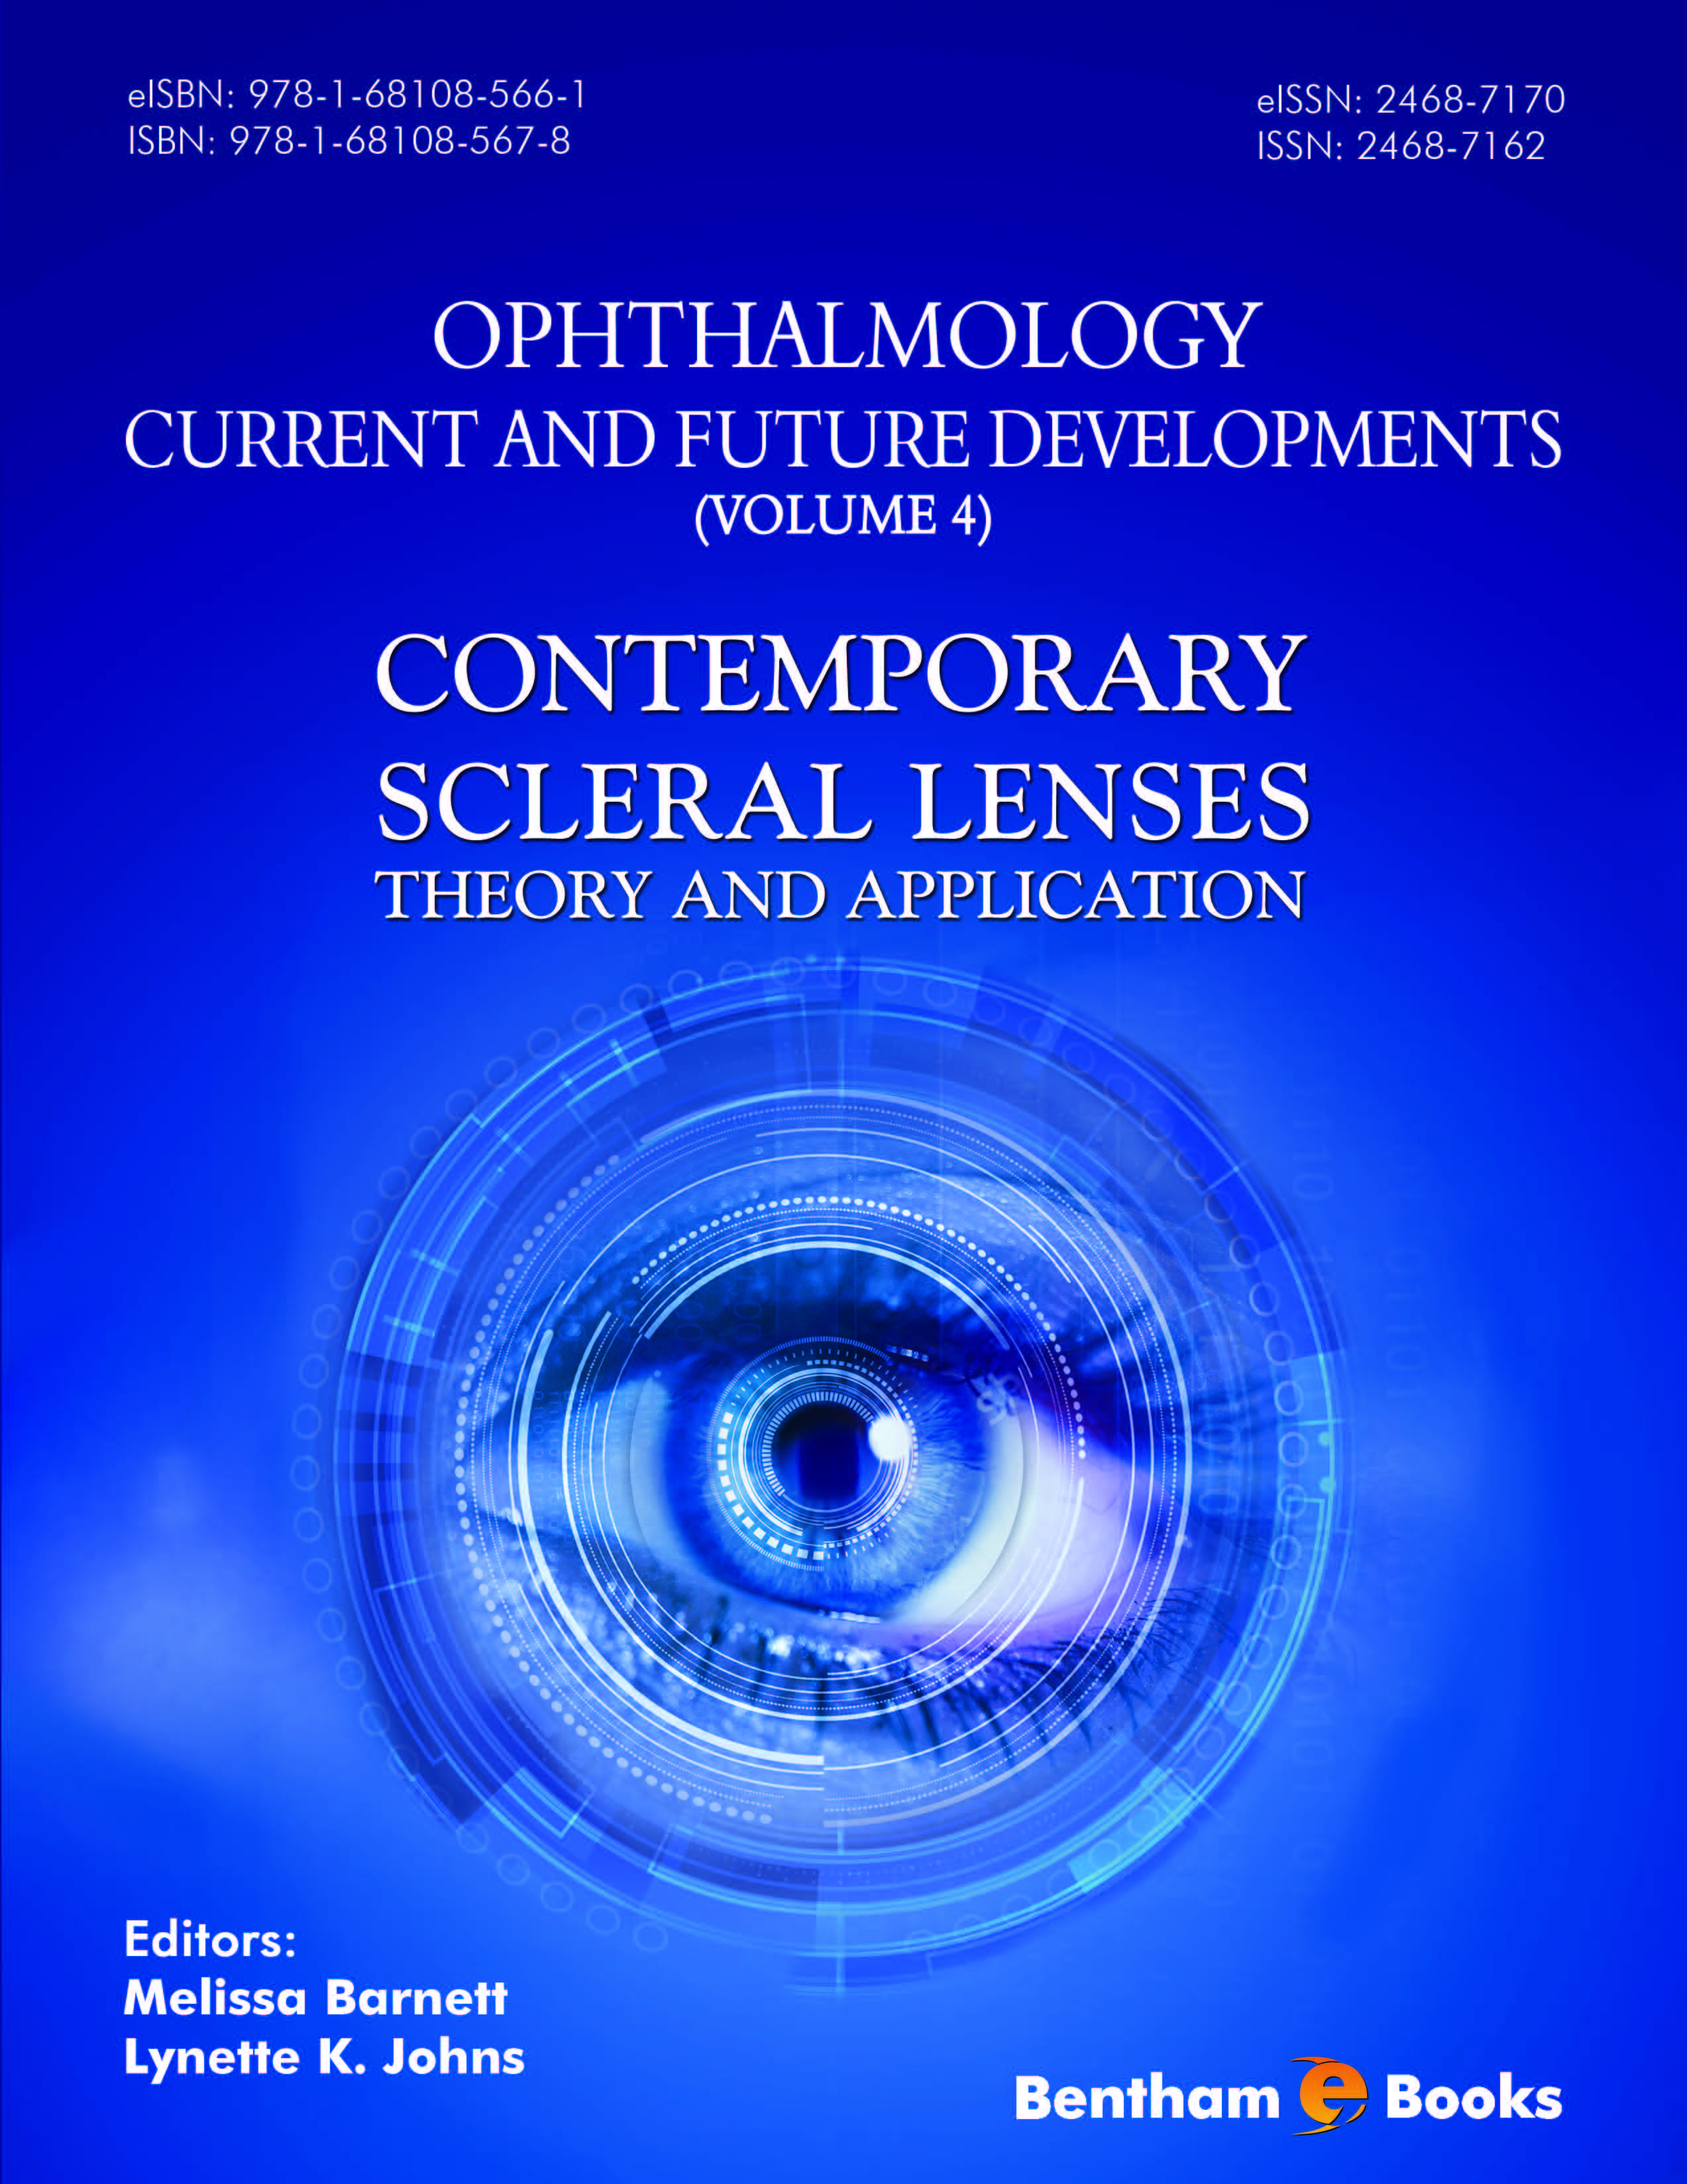 Contemporary Scleral Lenses: Theory and Application